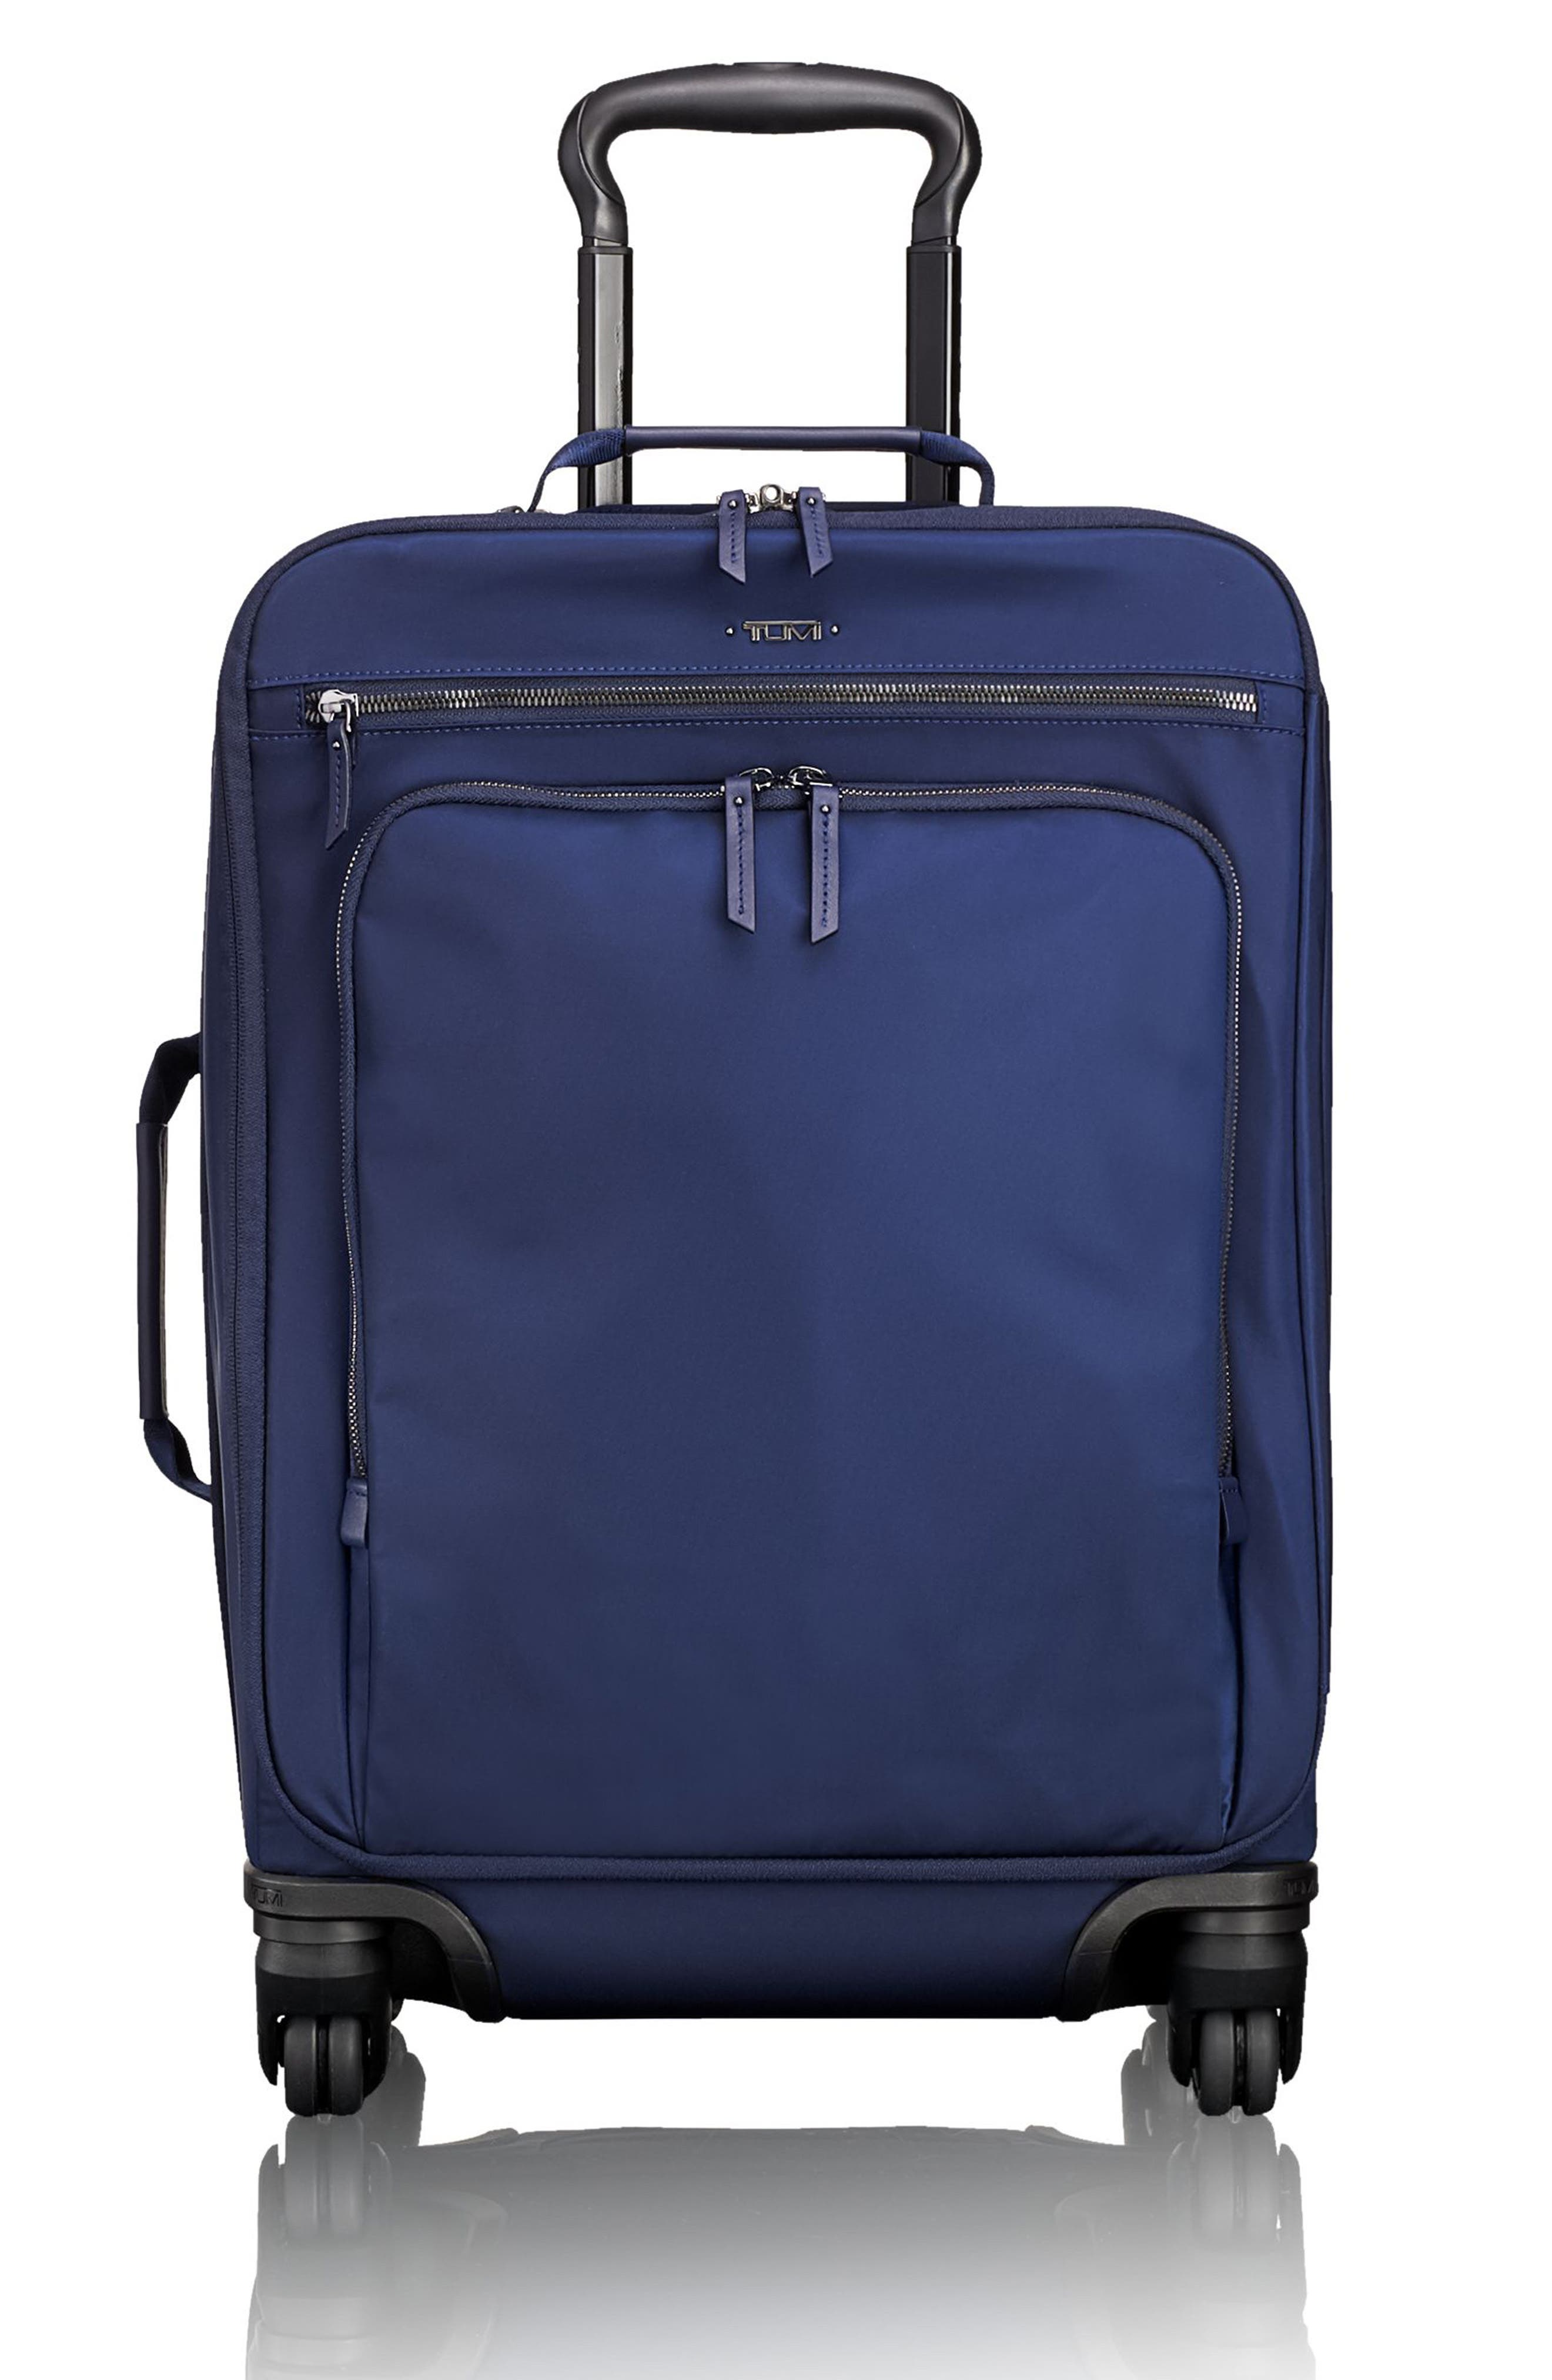 TUMI Super Leger 21 Inch Nylon Carry-On